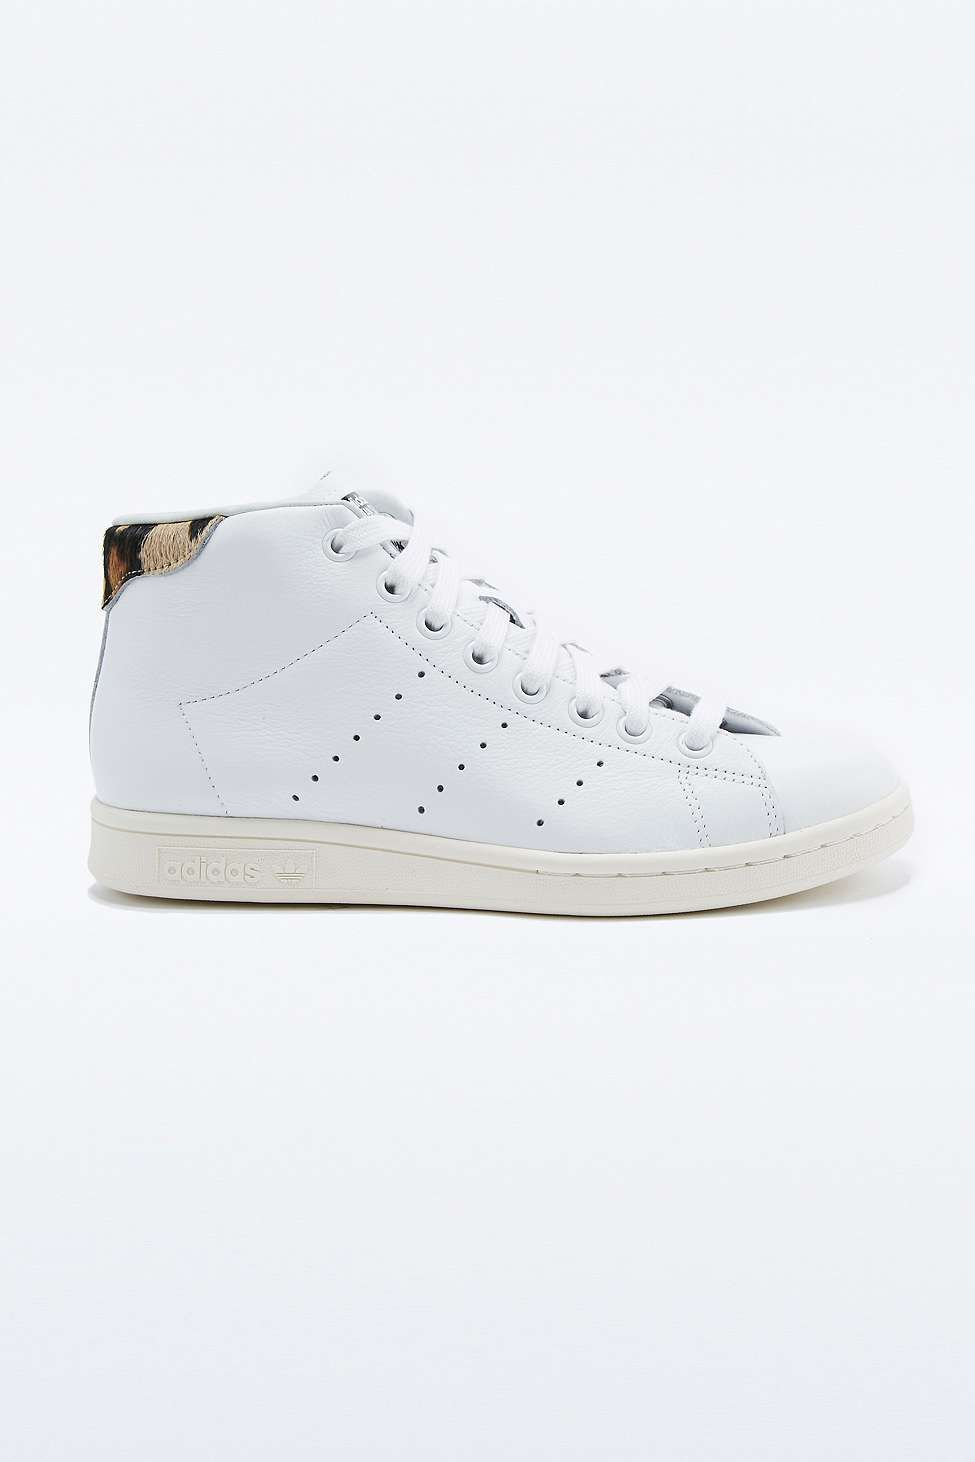 adidas originals white & black stan smith mid top trainers